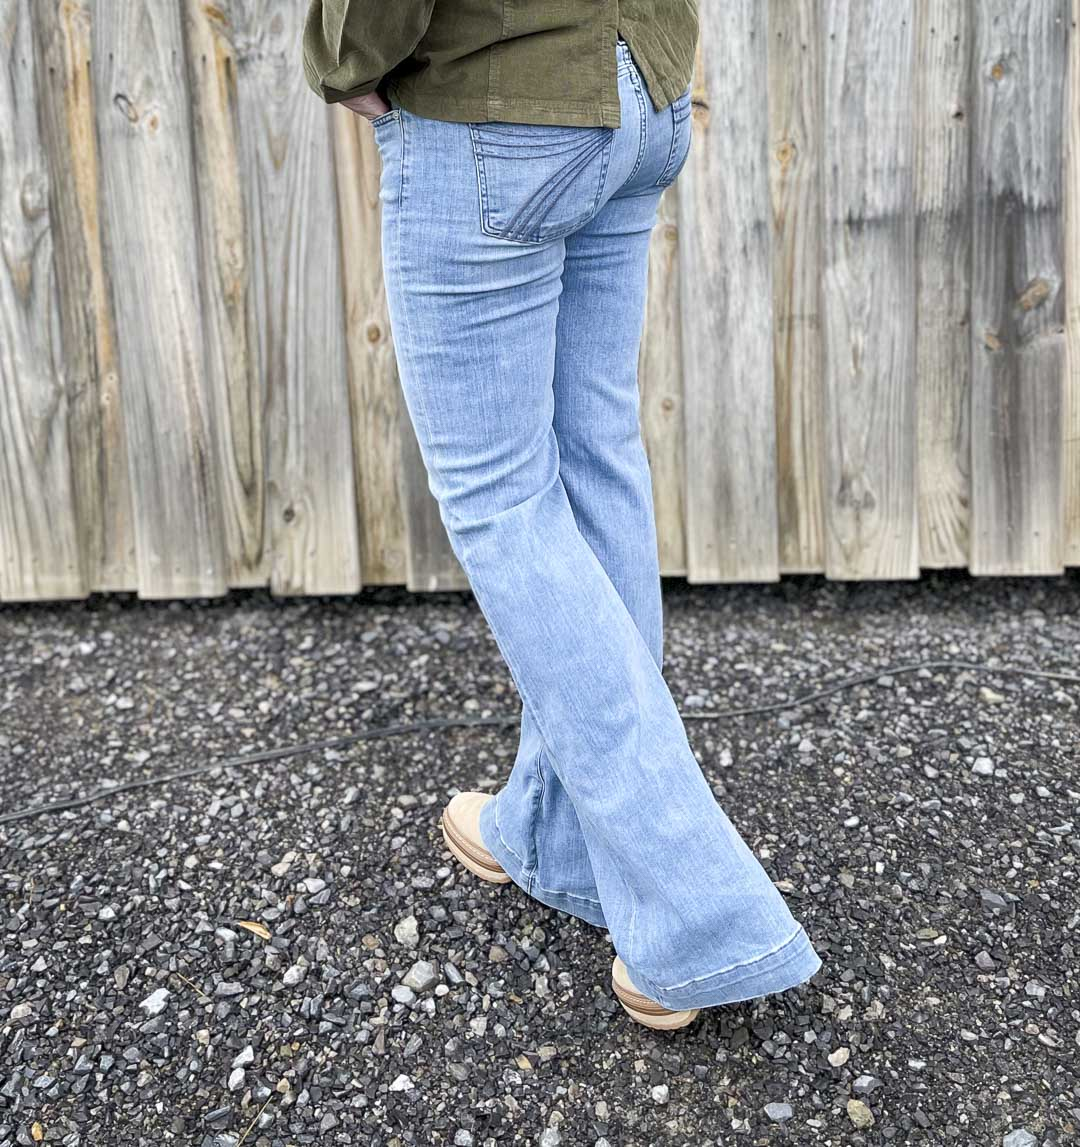 Over 40 Fashion Blogger, Tania Stephens, is showing the back of a pair of flare jeans